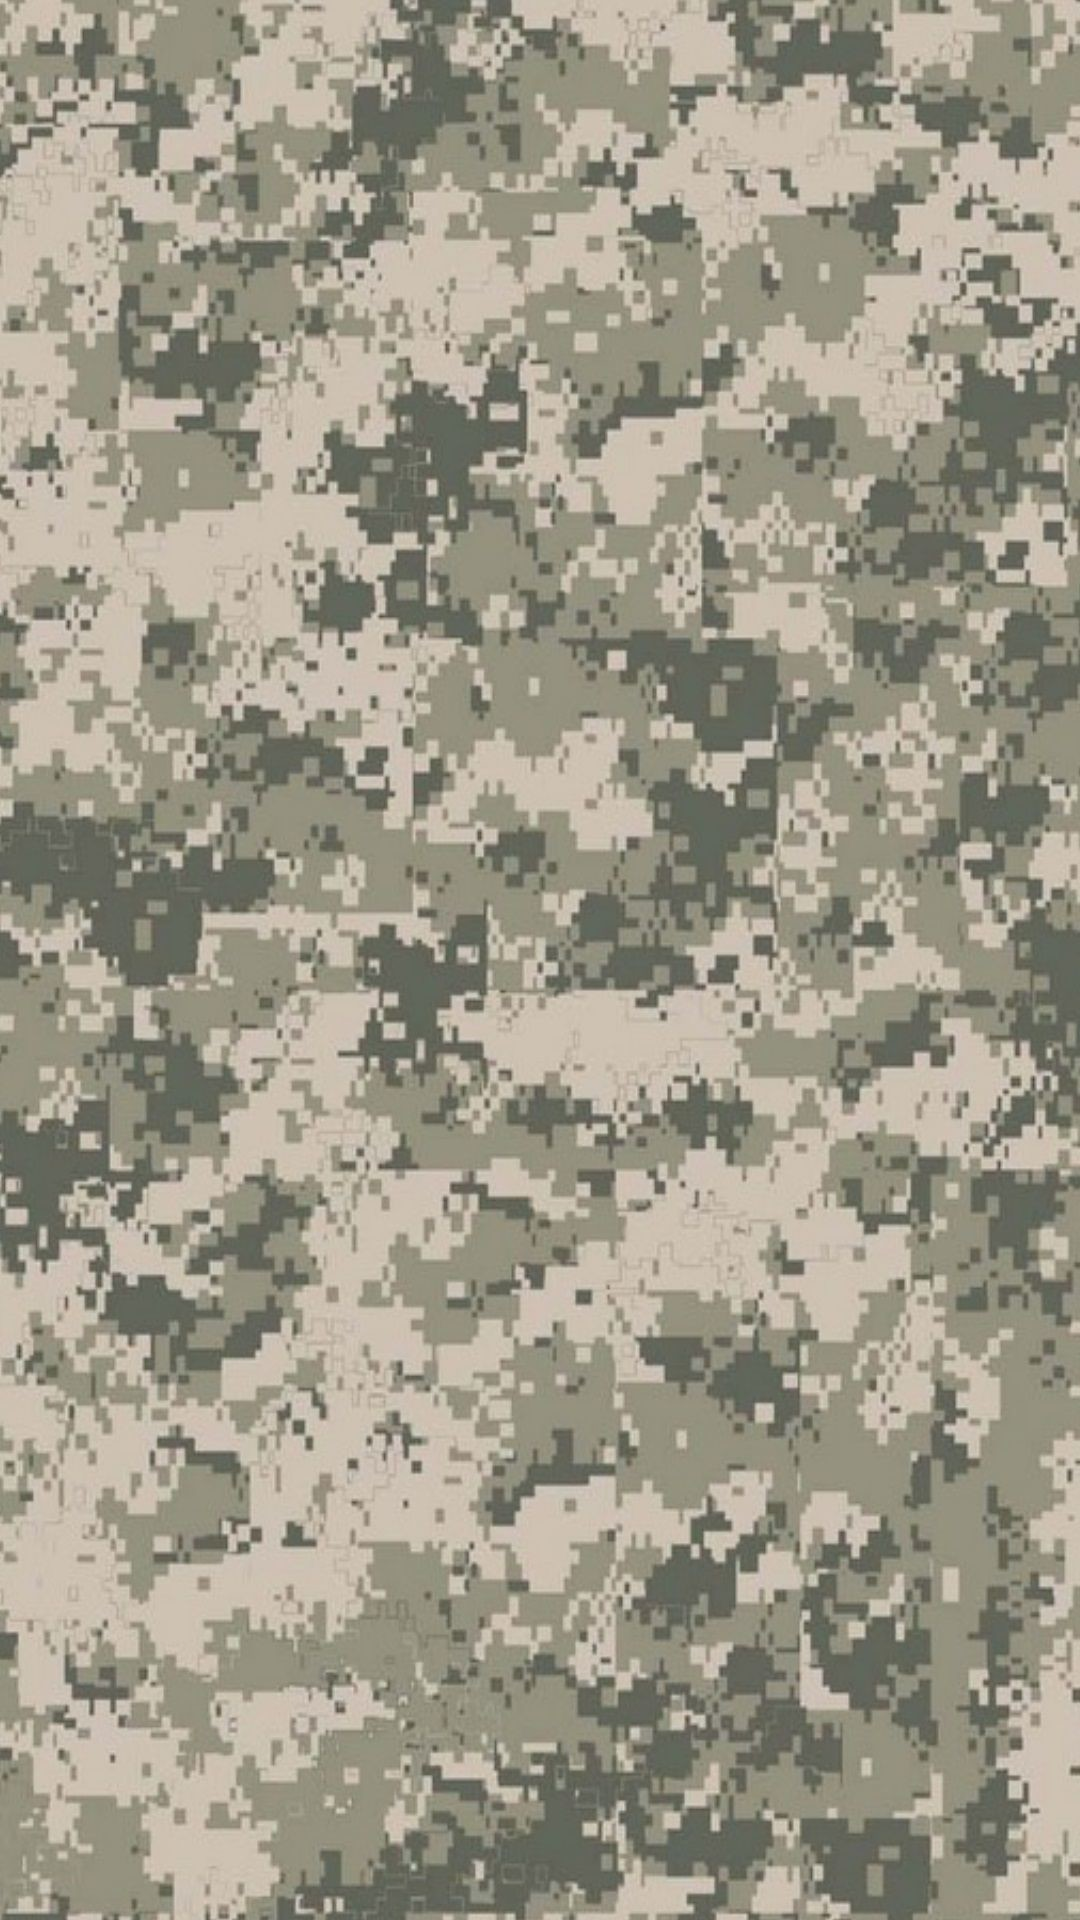 1080x1920, Camouflage Wallpaper For Iphone Or Android - Military Wallpapers Iphone - HD Wallpaper